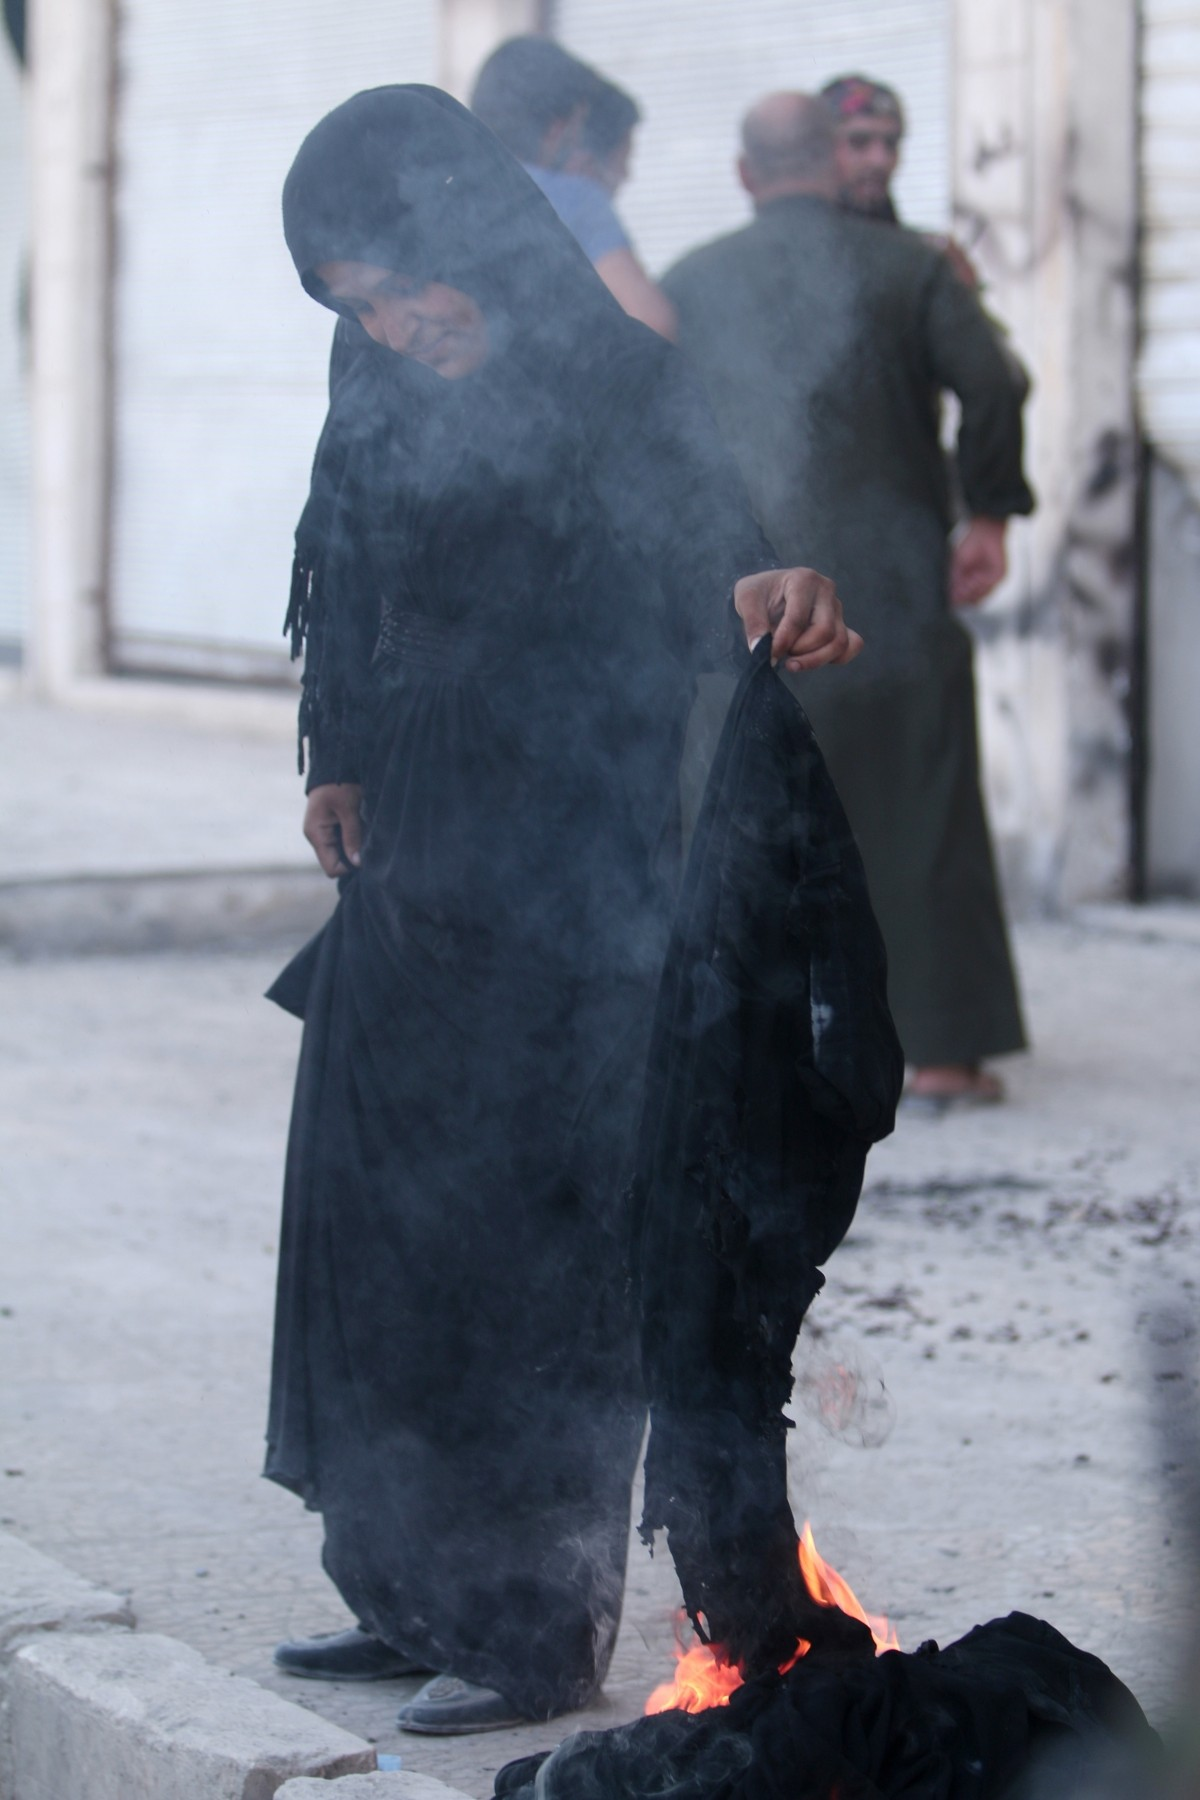 A woman sets fire to a niqab after she was evacuated with others by the Syria Democratic Forces (SDF) fighters from an Islamic State-controlled neighbourhood of Manbij, in Aleppo Governorate, Syria, August 12, 2016. The SDF has said Islamic State was using civilians as human shields.